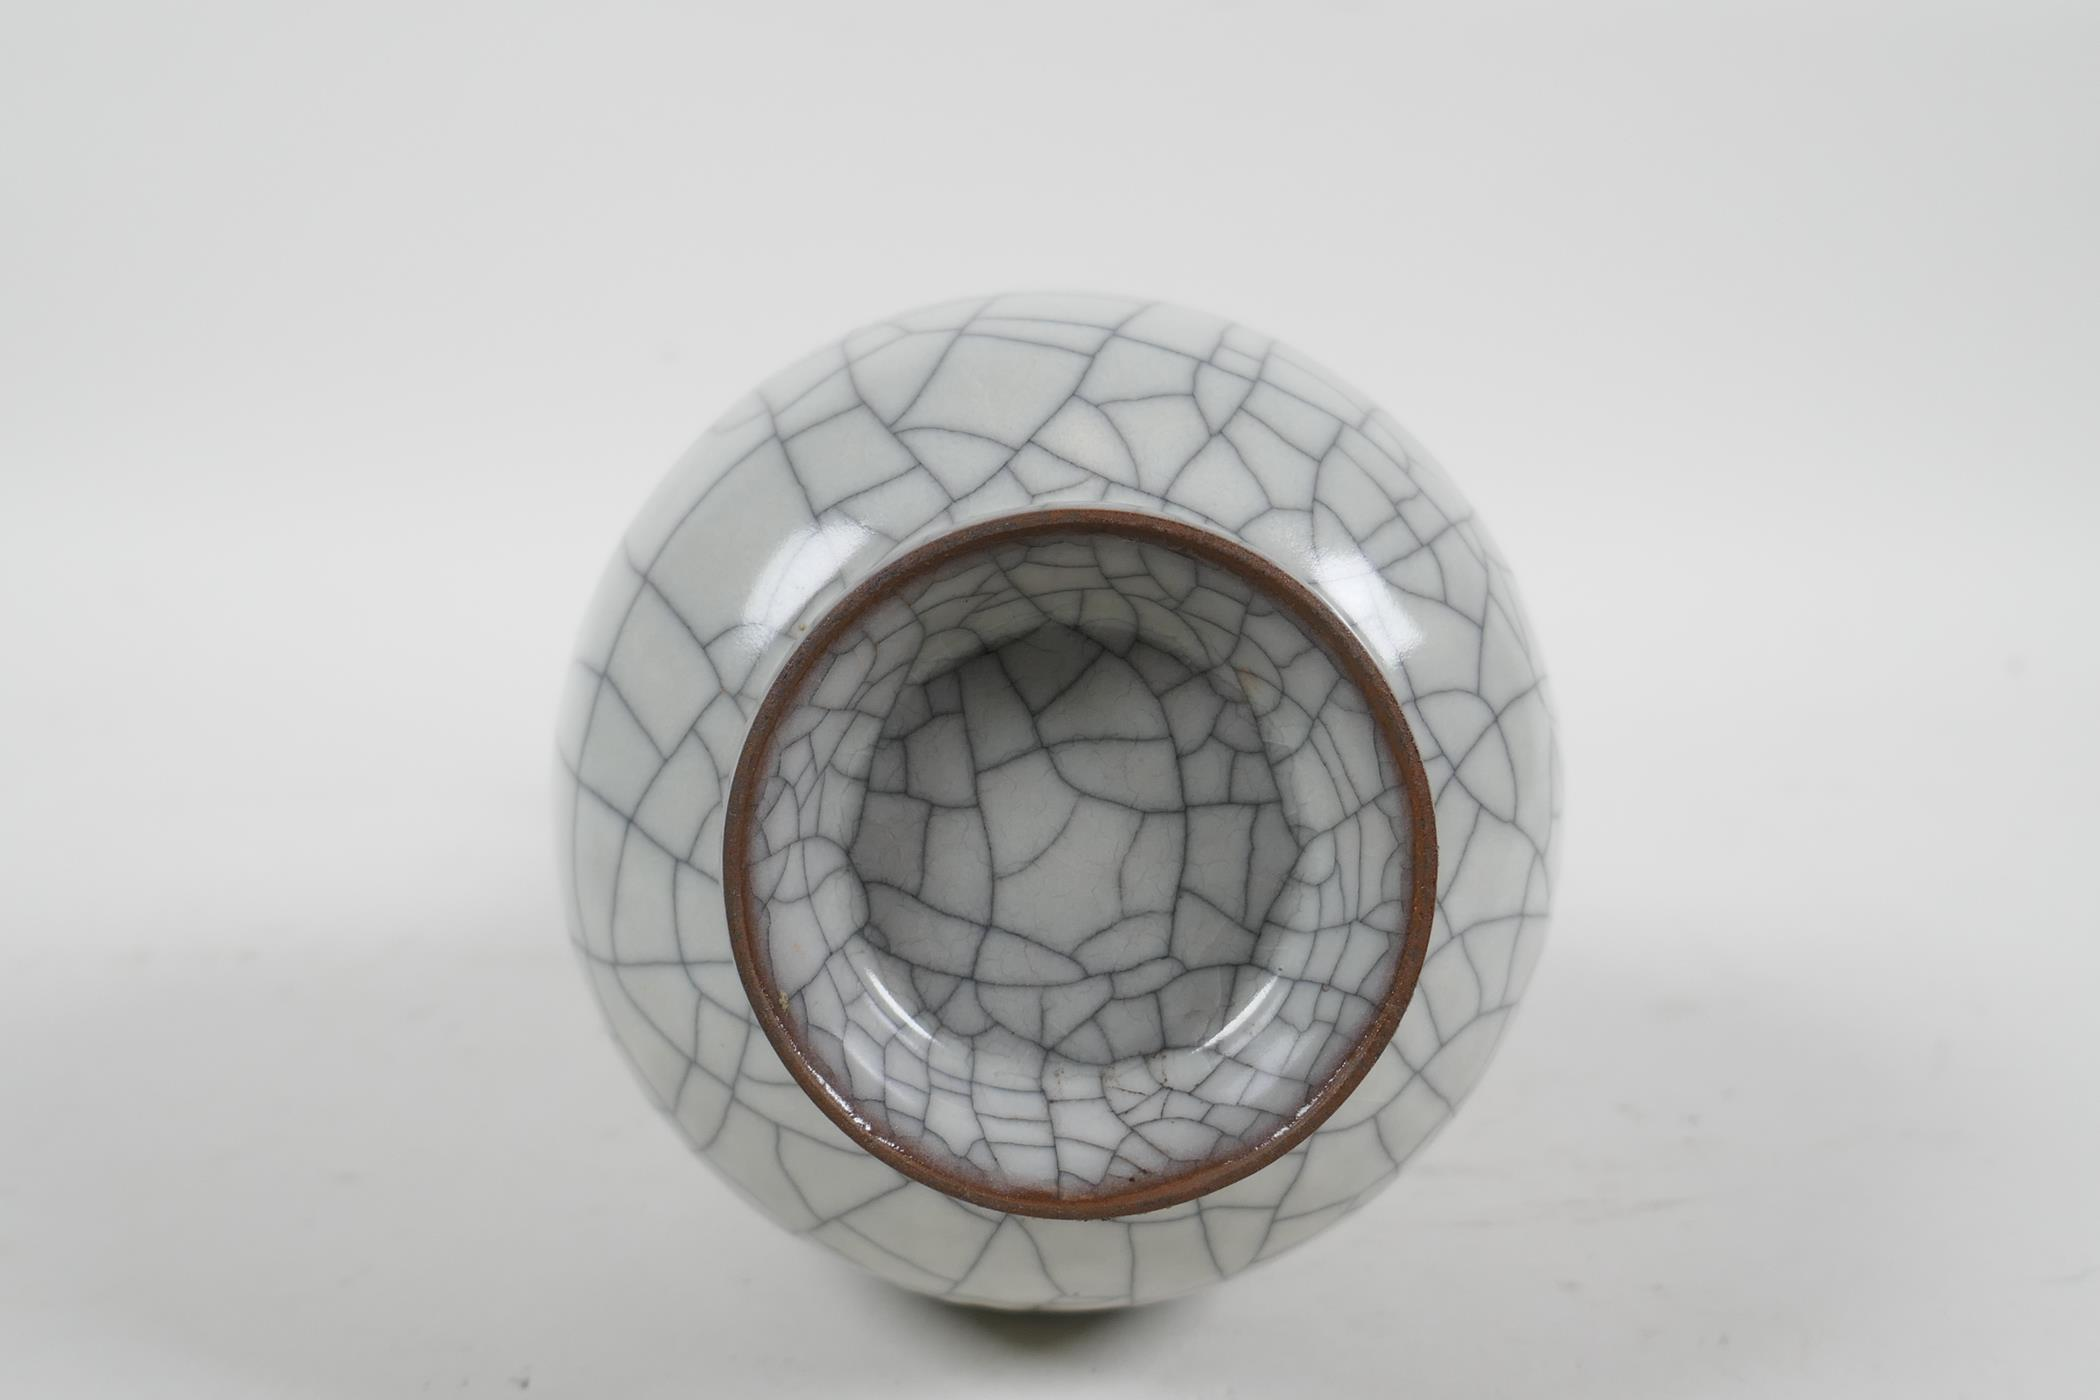 """A Chinese crackleware pottery vase, 8"""" high - Image 4 of 4"""